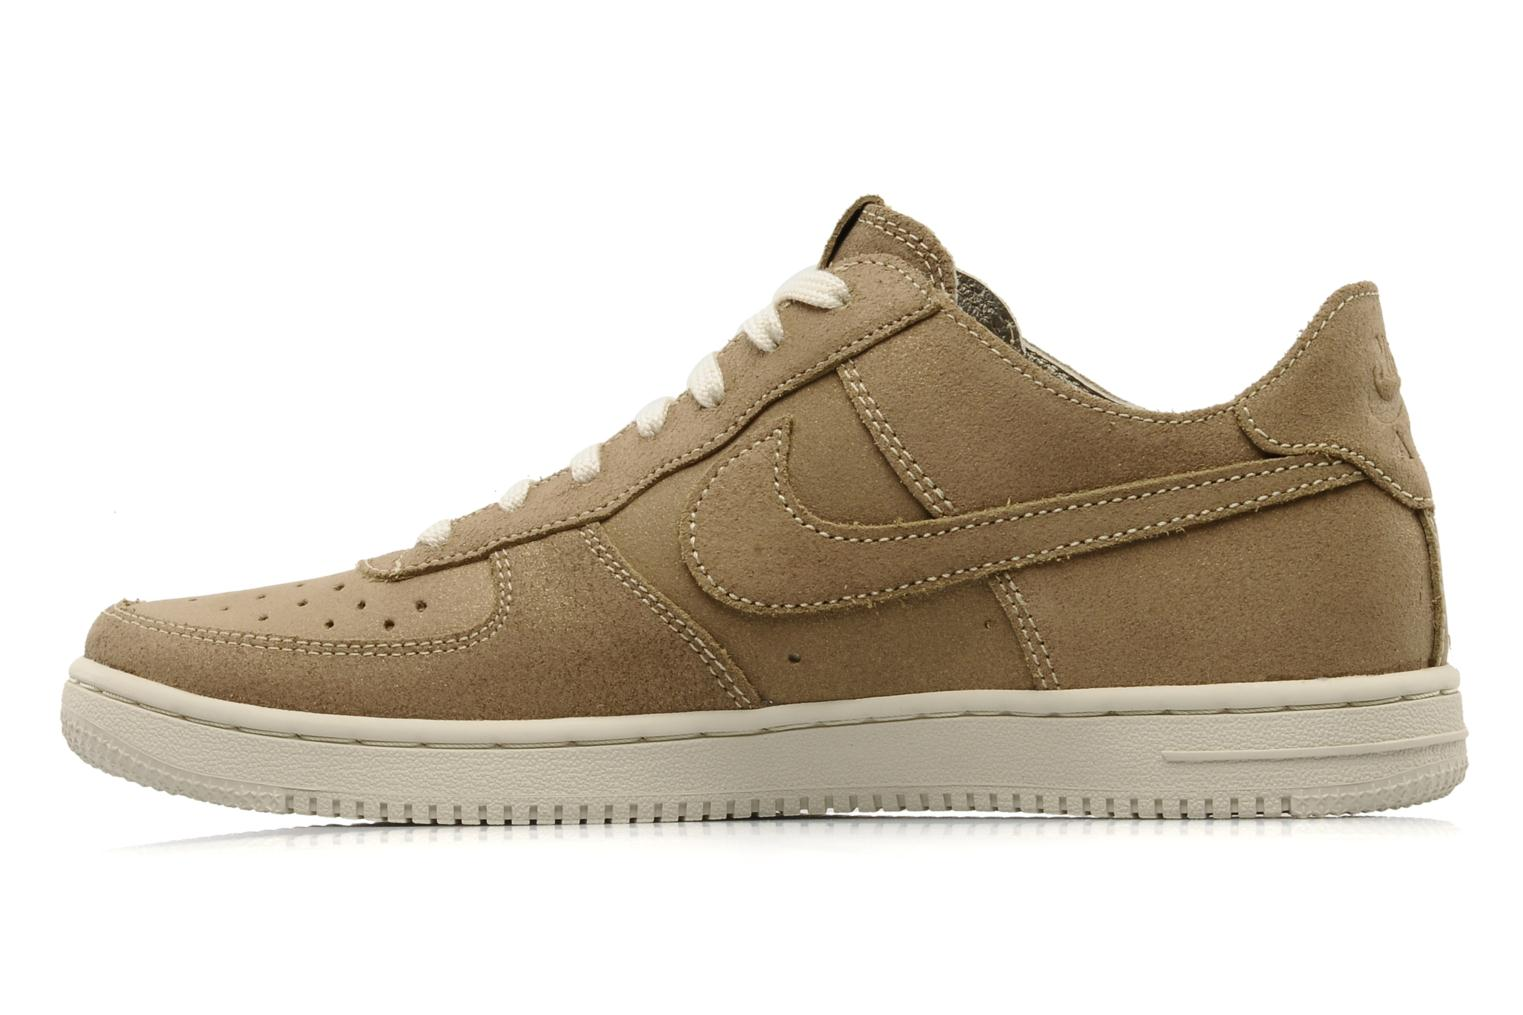 Sneakers Nike Wmns air force 1 low light Oro e bronzo immagine frontale